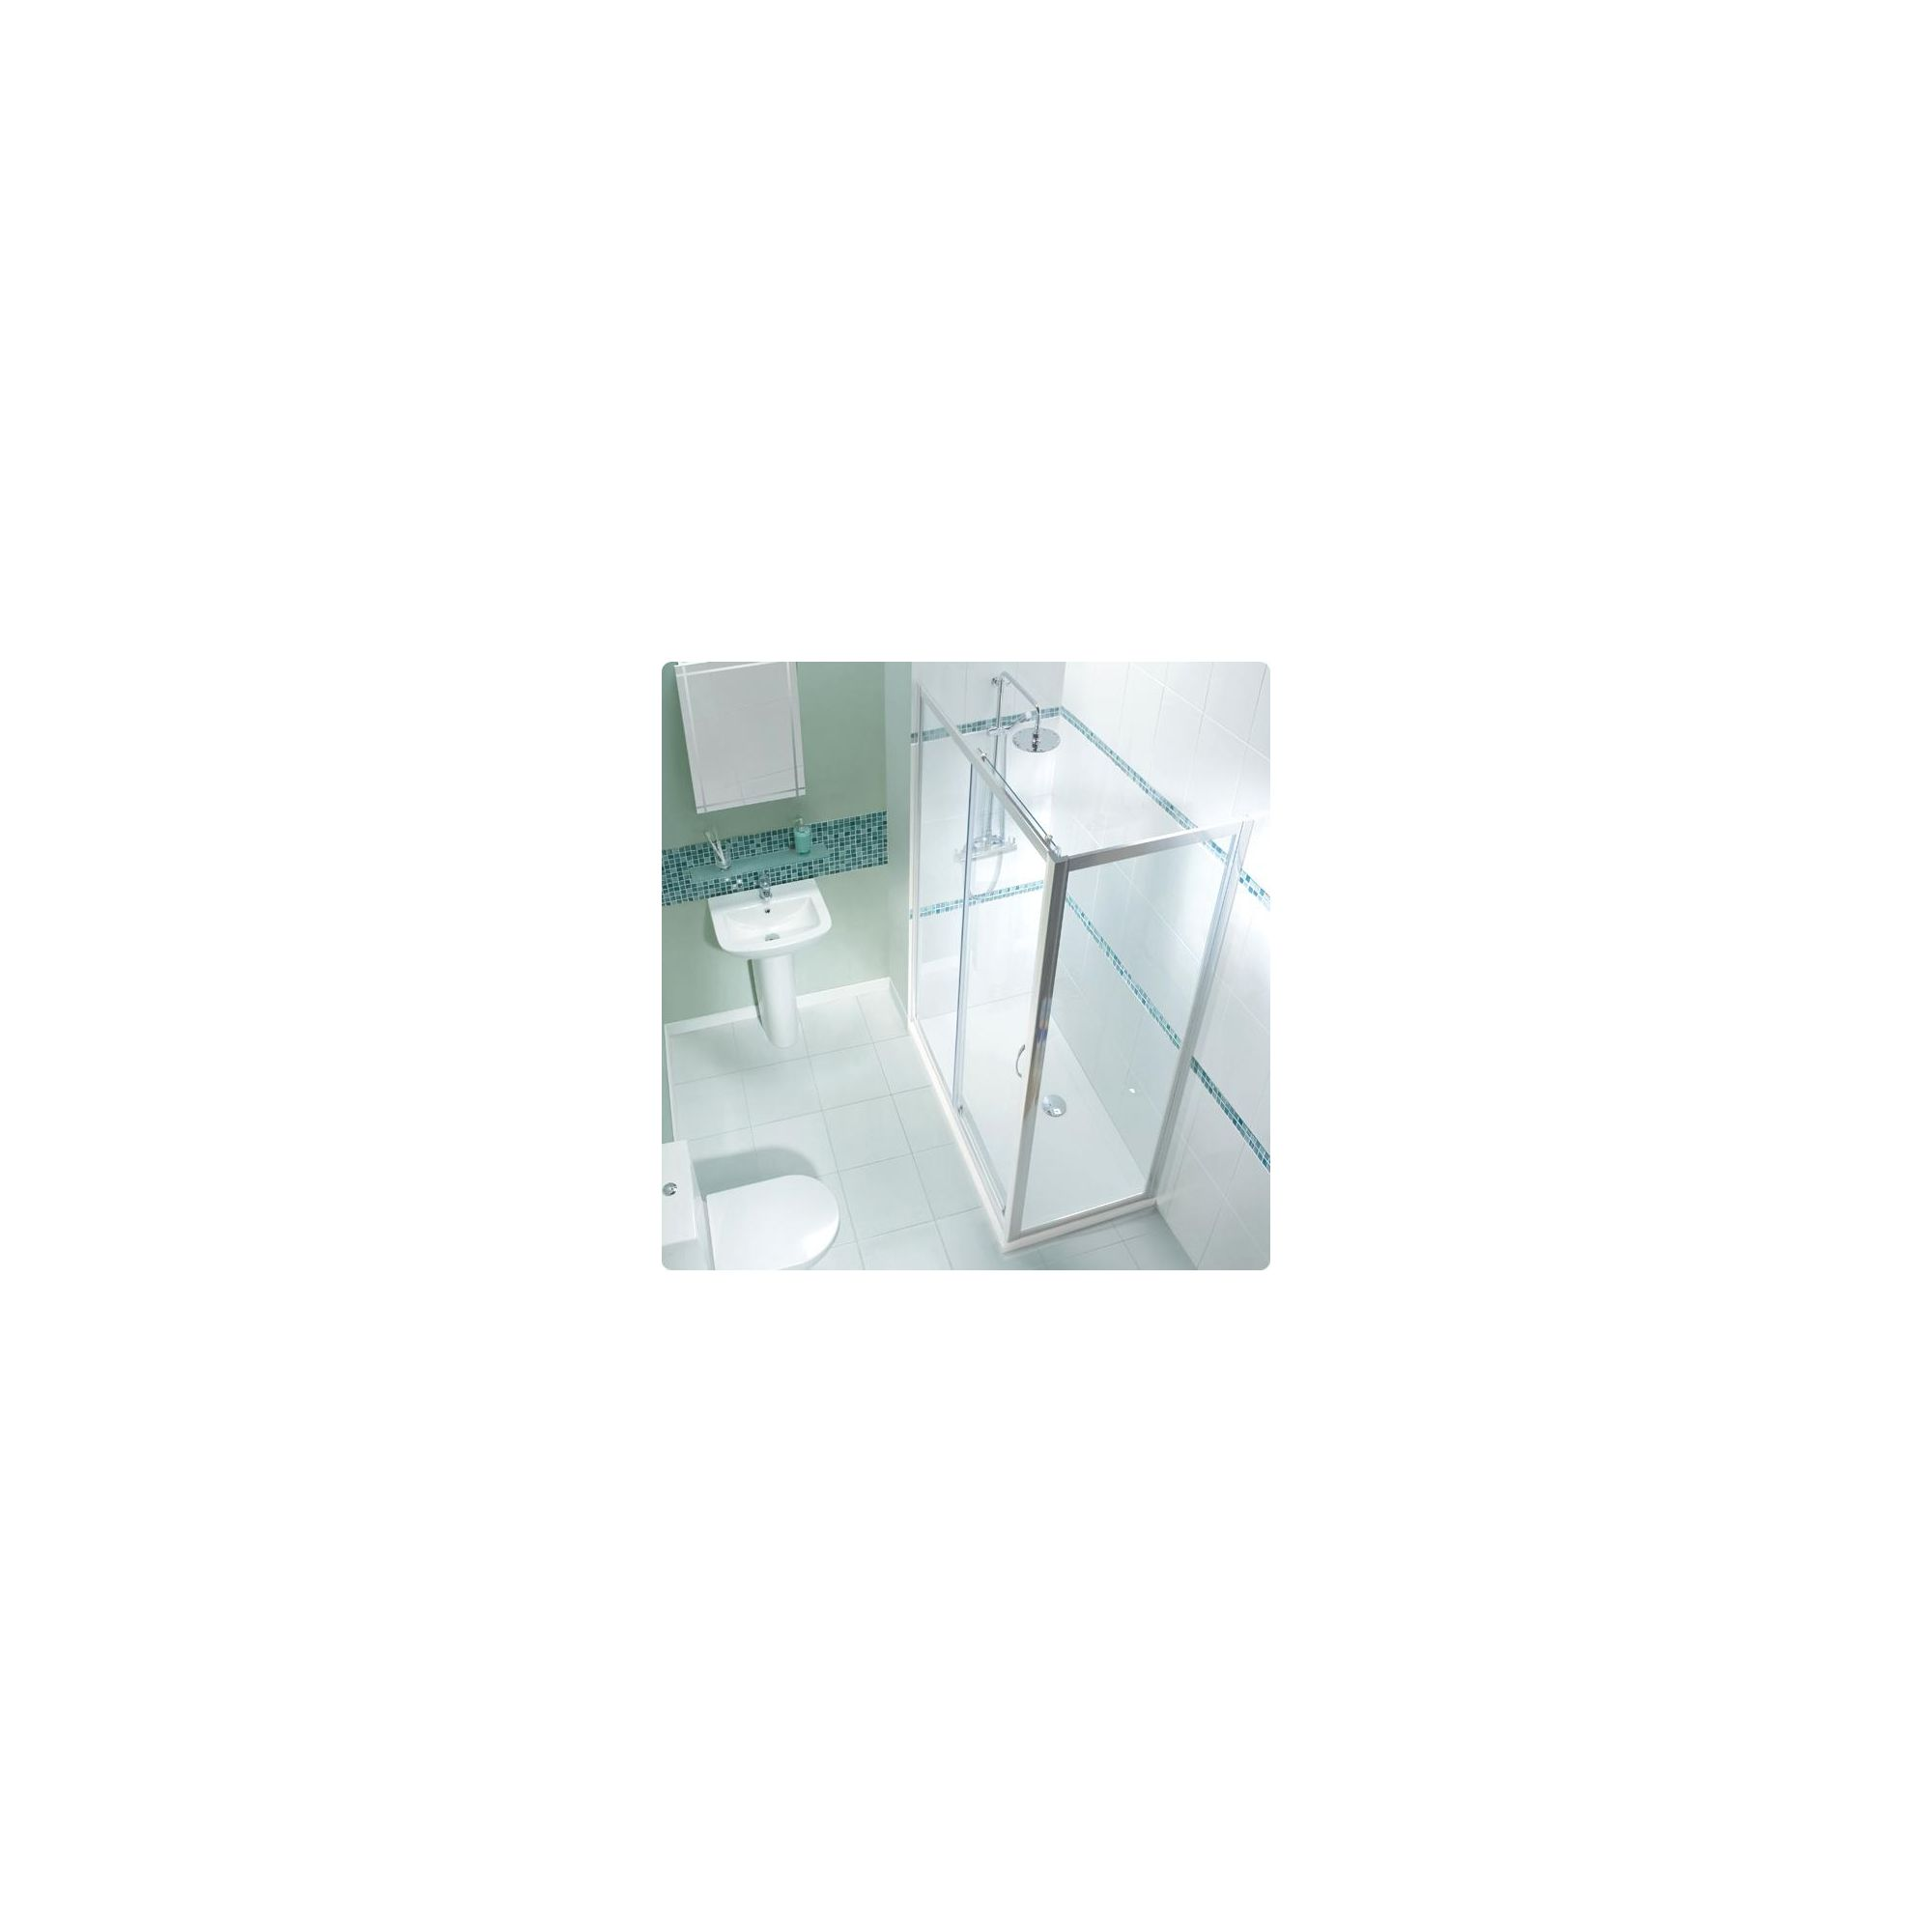 Balterley Framed Sliding Shower Enclosure, 1200mm x 900mm, Standard Tray, 6mm Glass at Tesco Direct